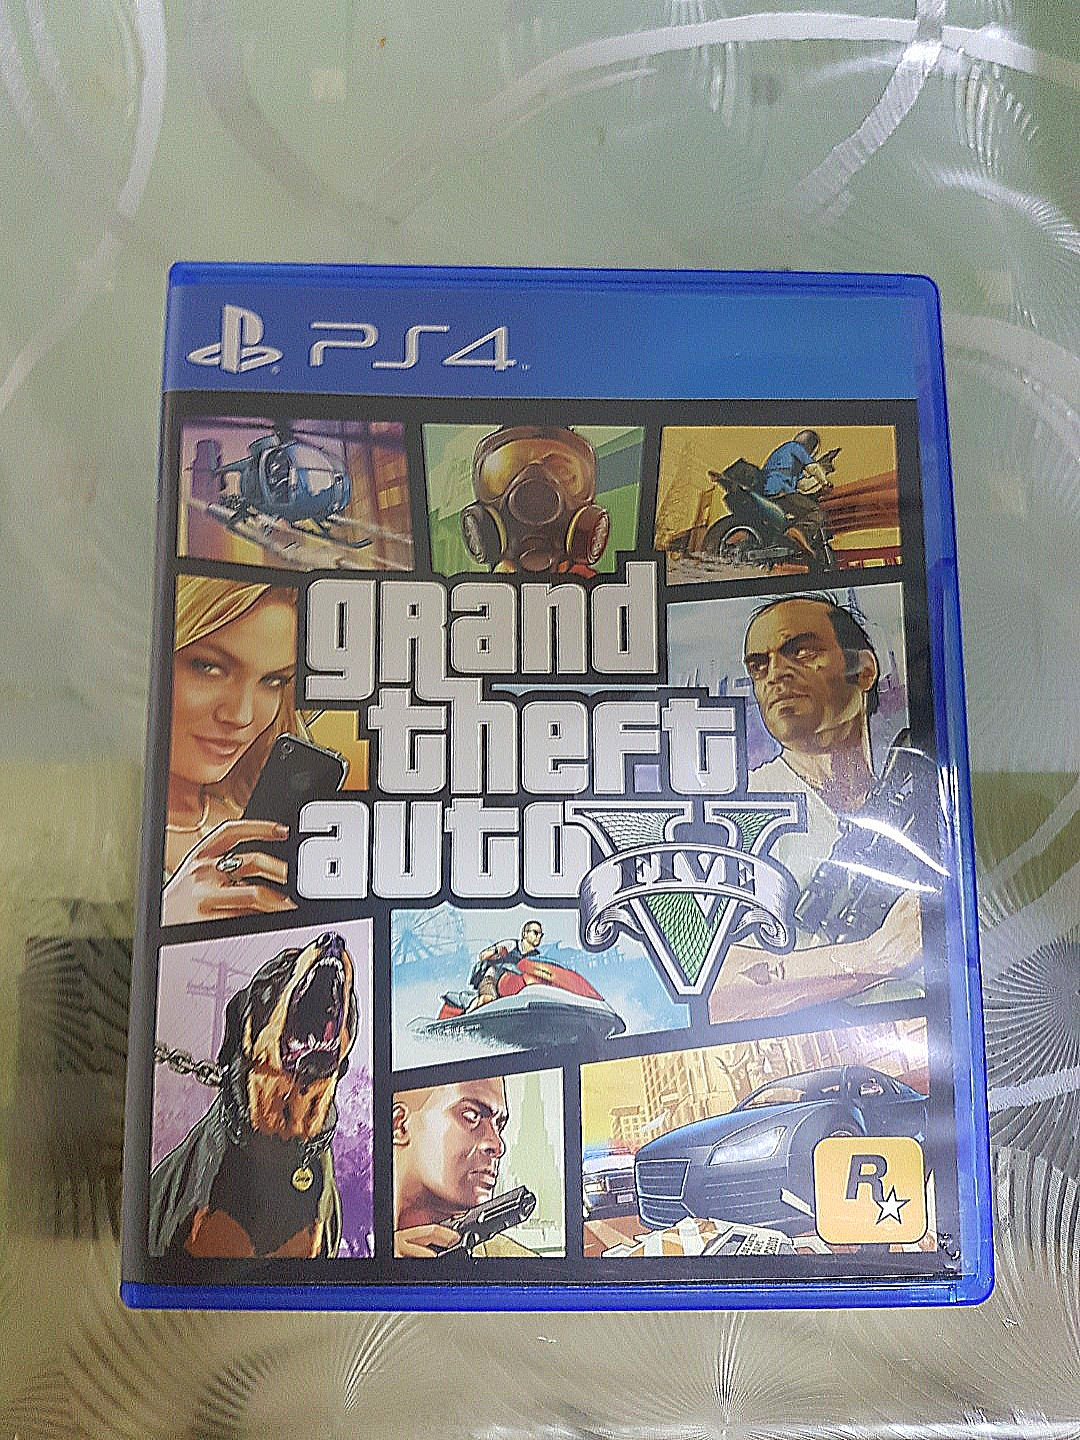 Ps4 Grand Theft Auto V Toys Games Video Gaming On Game Photo